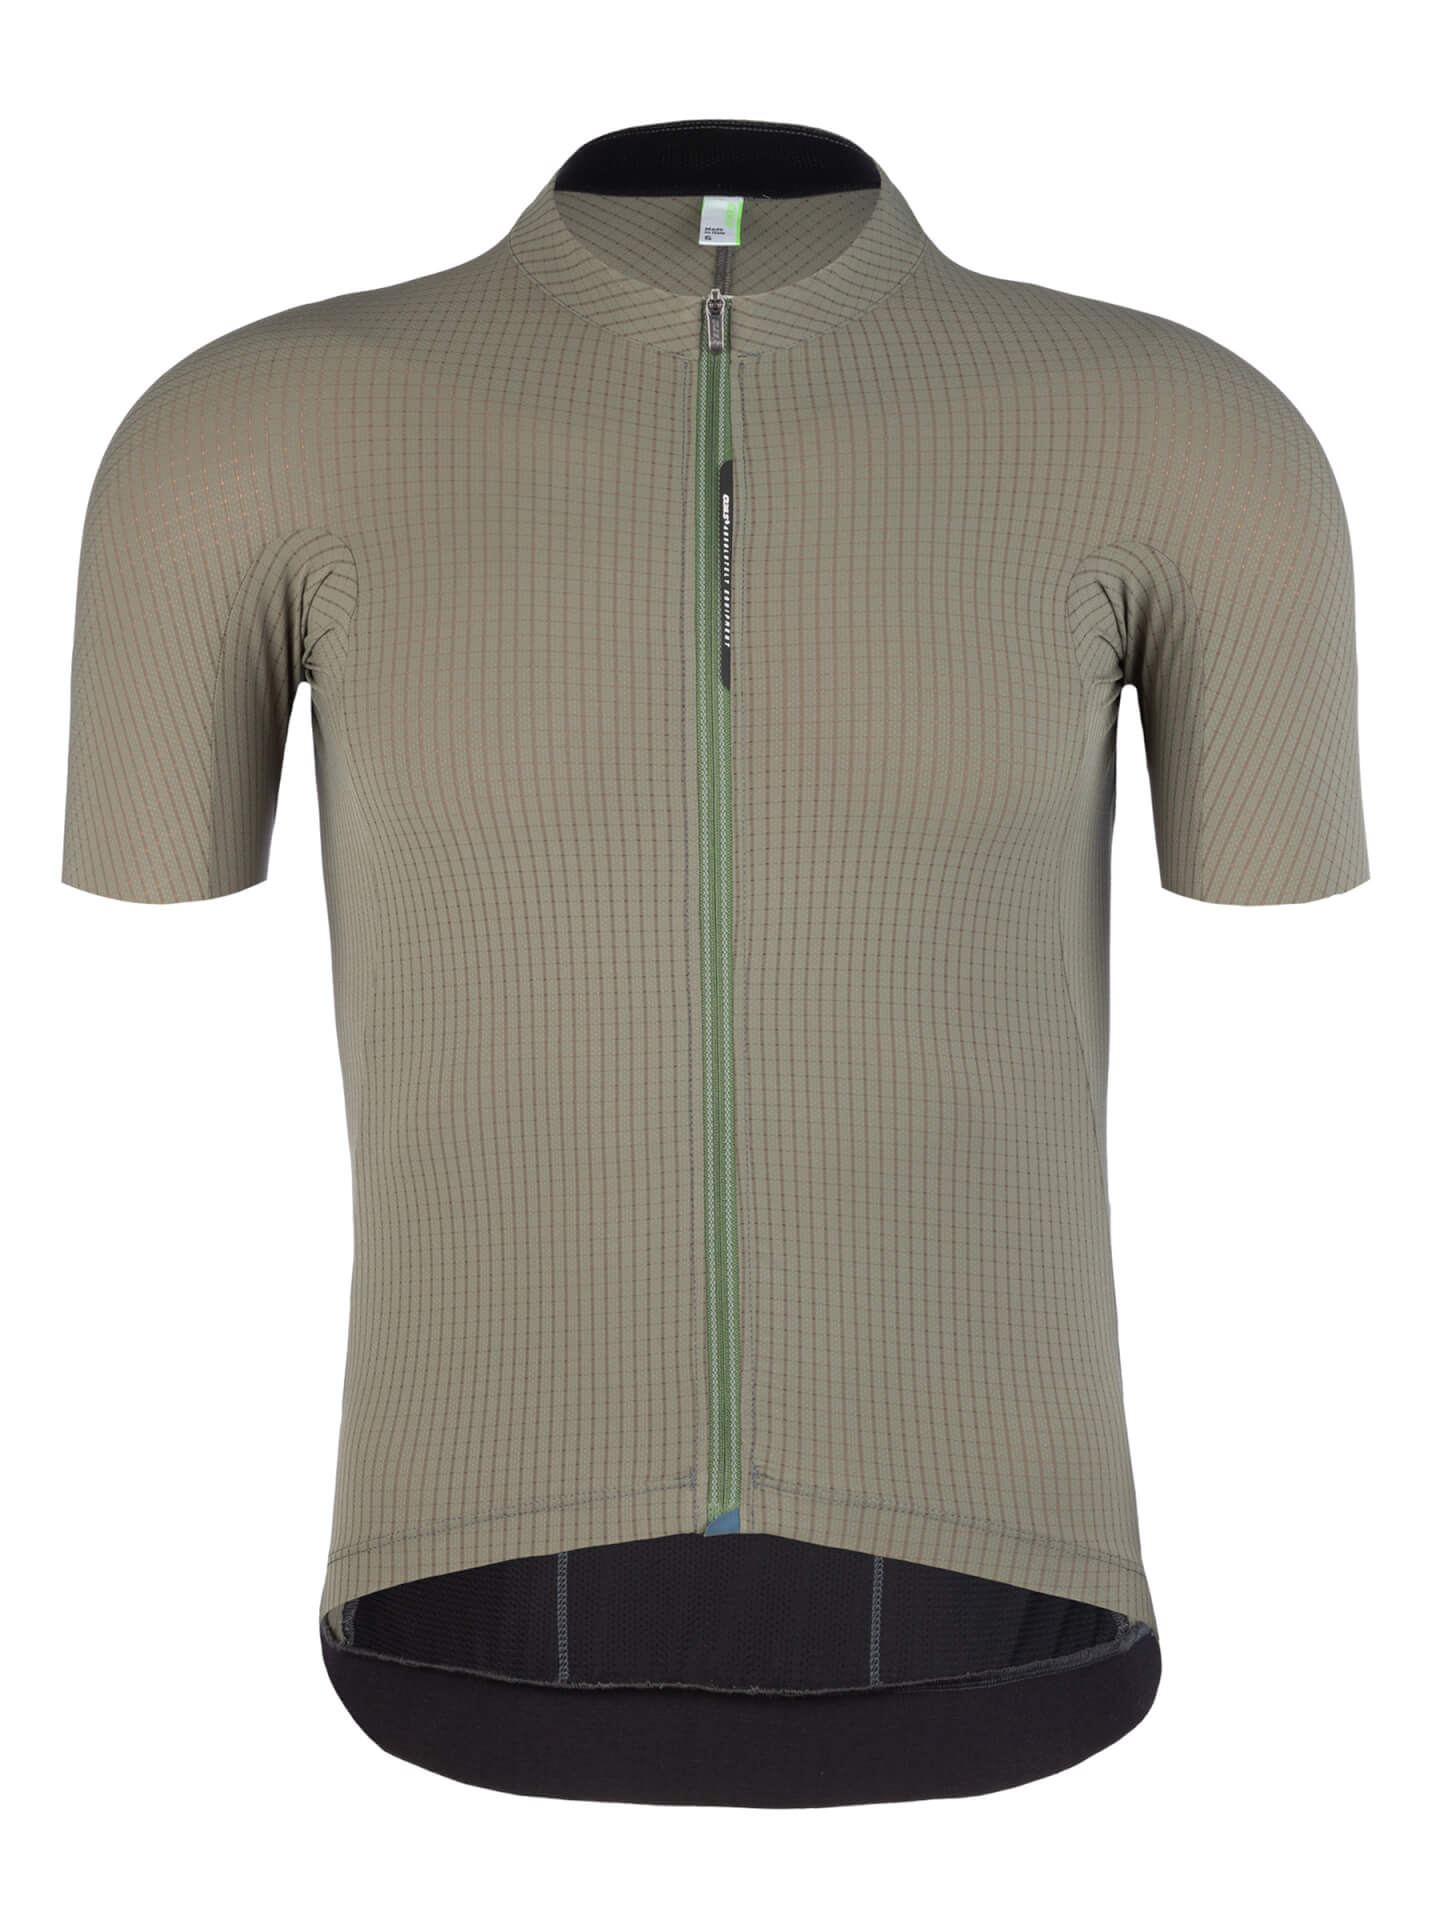 mens cycling jersey short sleeve Pinstripe X olive Q36.5